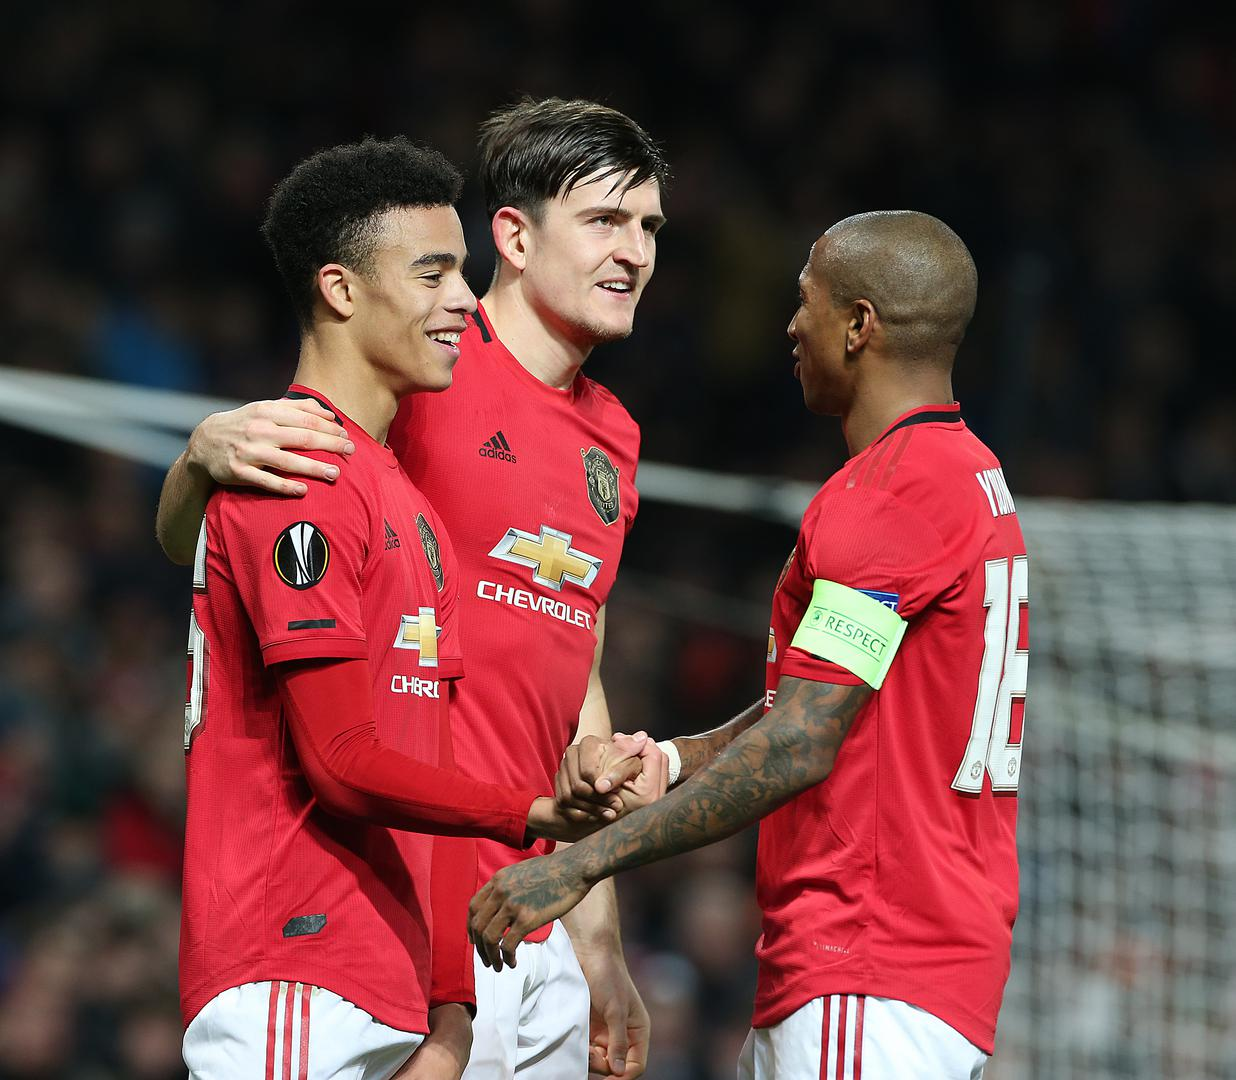 Mason Greenwood, Harry Maguire and Ashley Young celebrate goal against AZ Alkmaar..